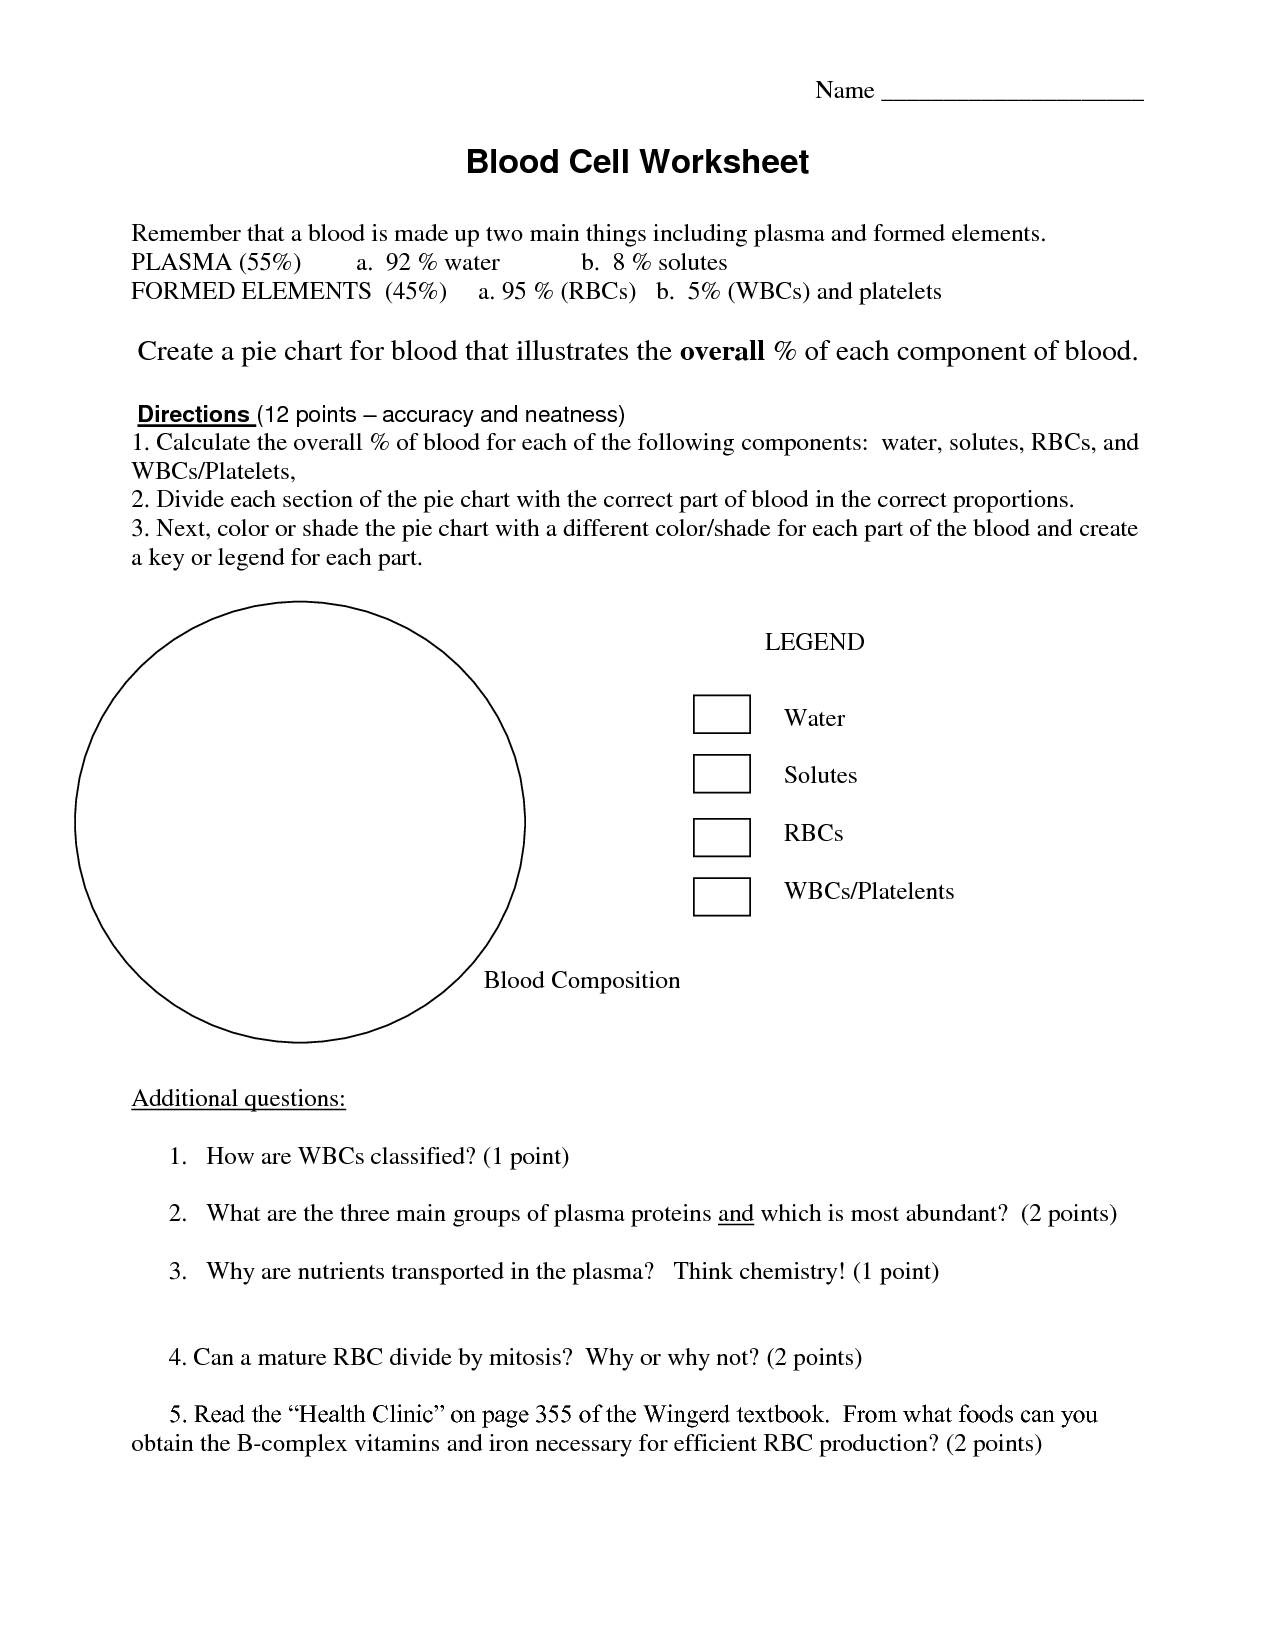 Blood Worksheet Answers Matching